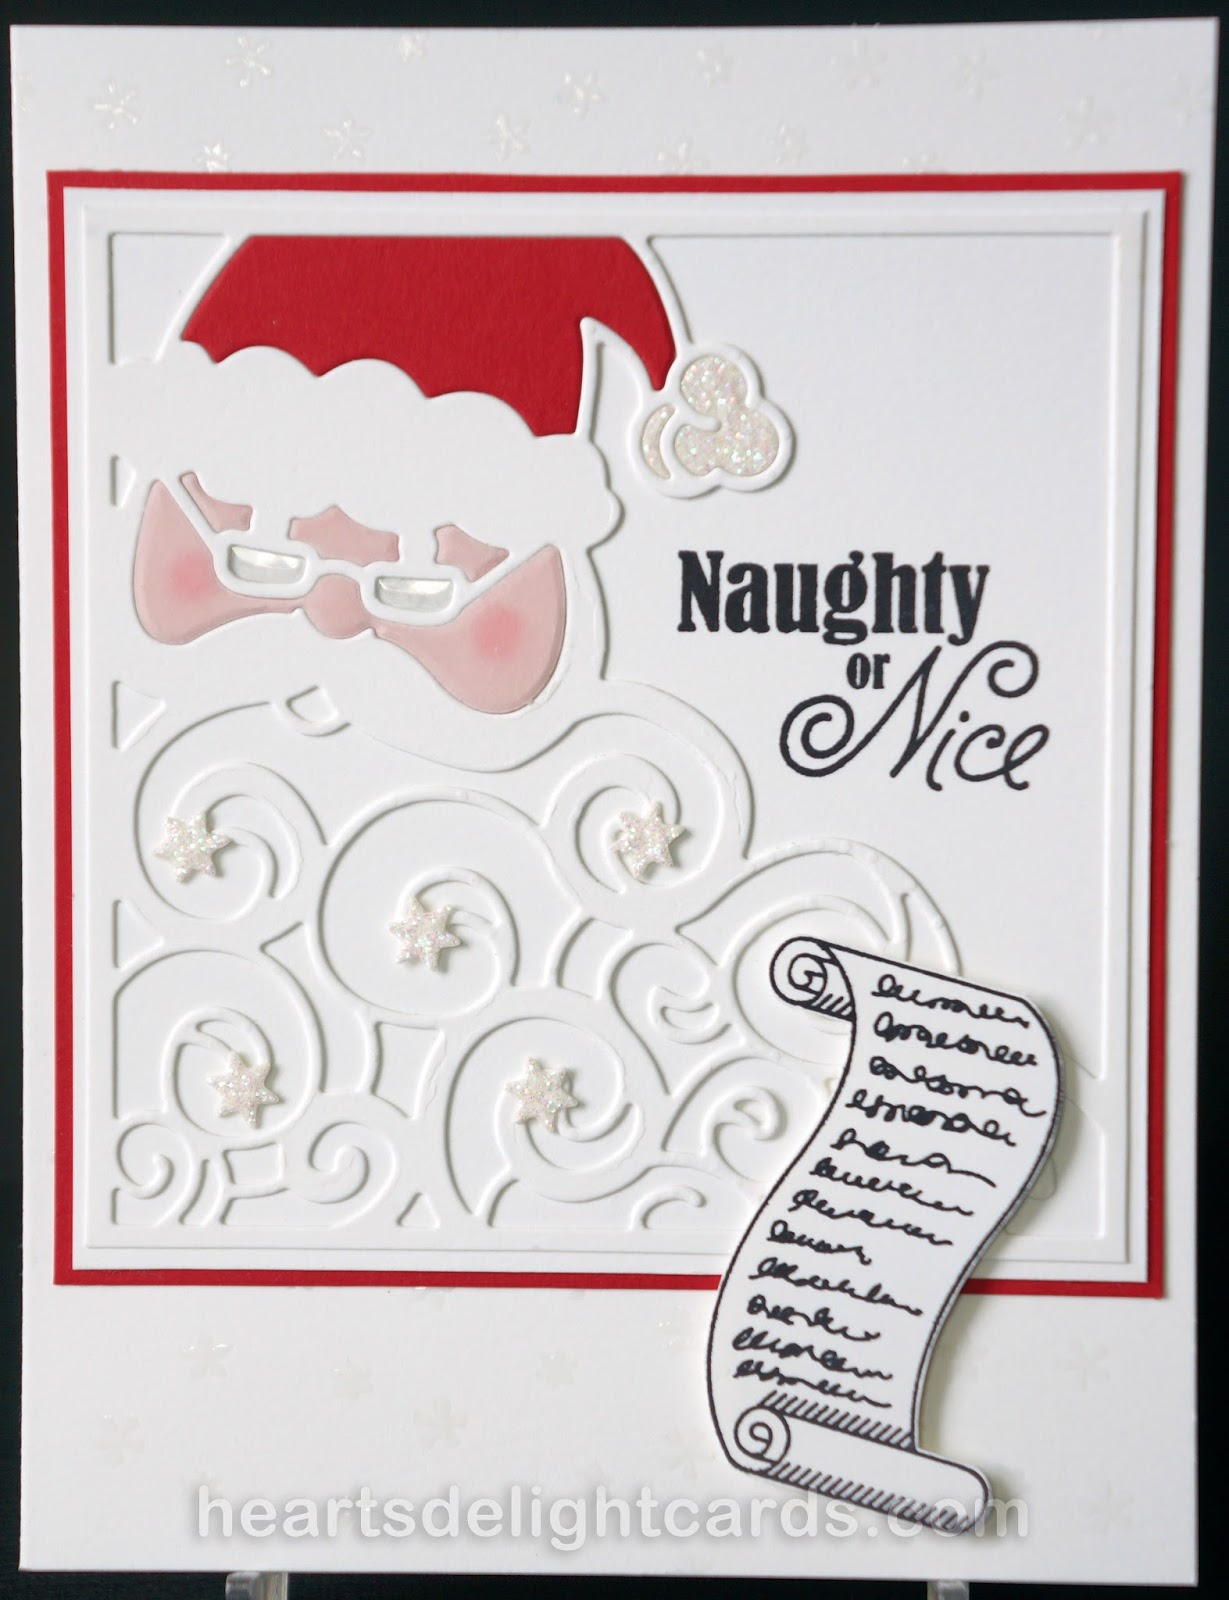 Hearts Delight Cards Greetings From Santa Holiday Sneak Peek